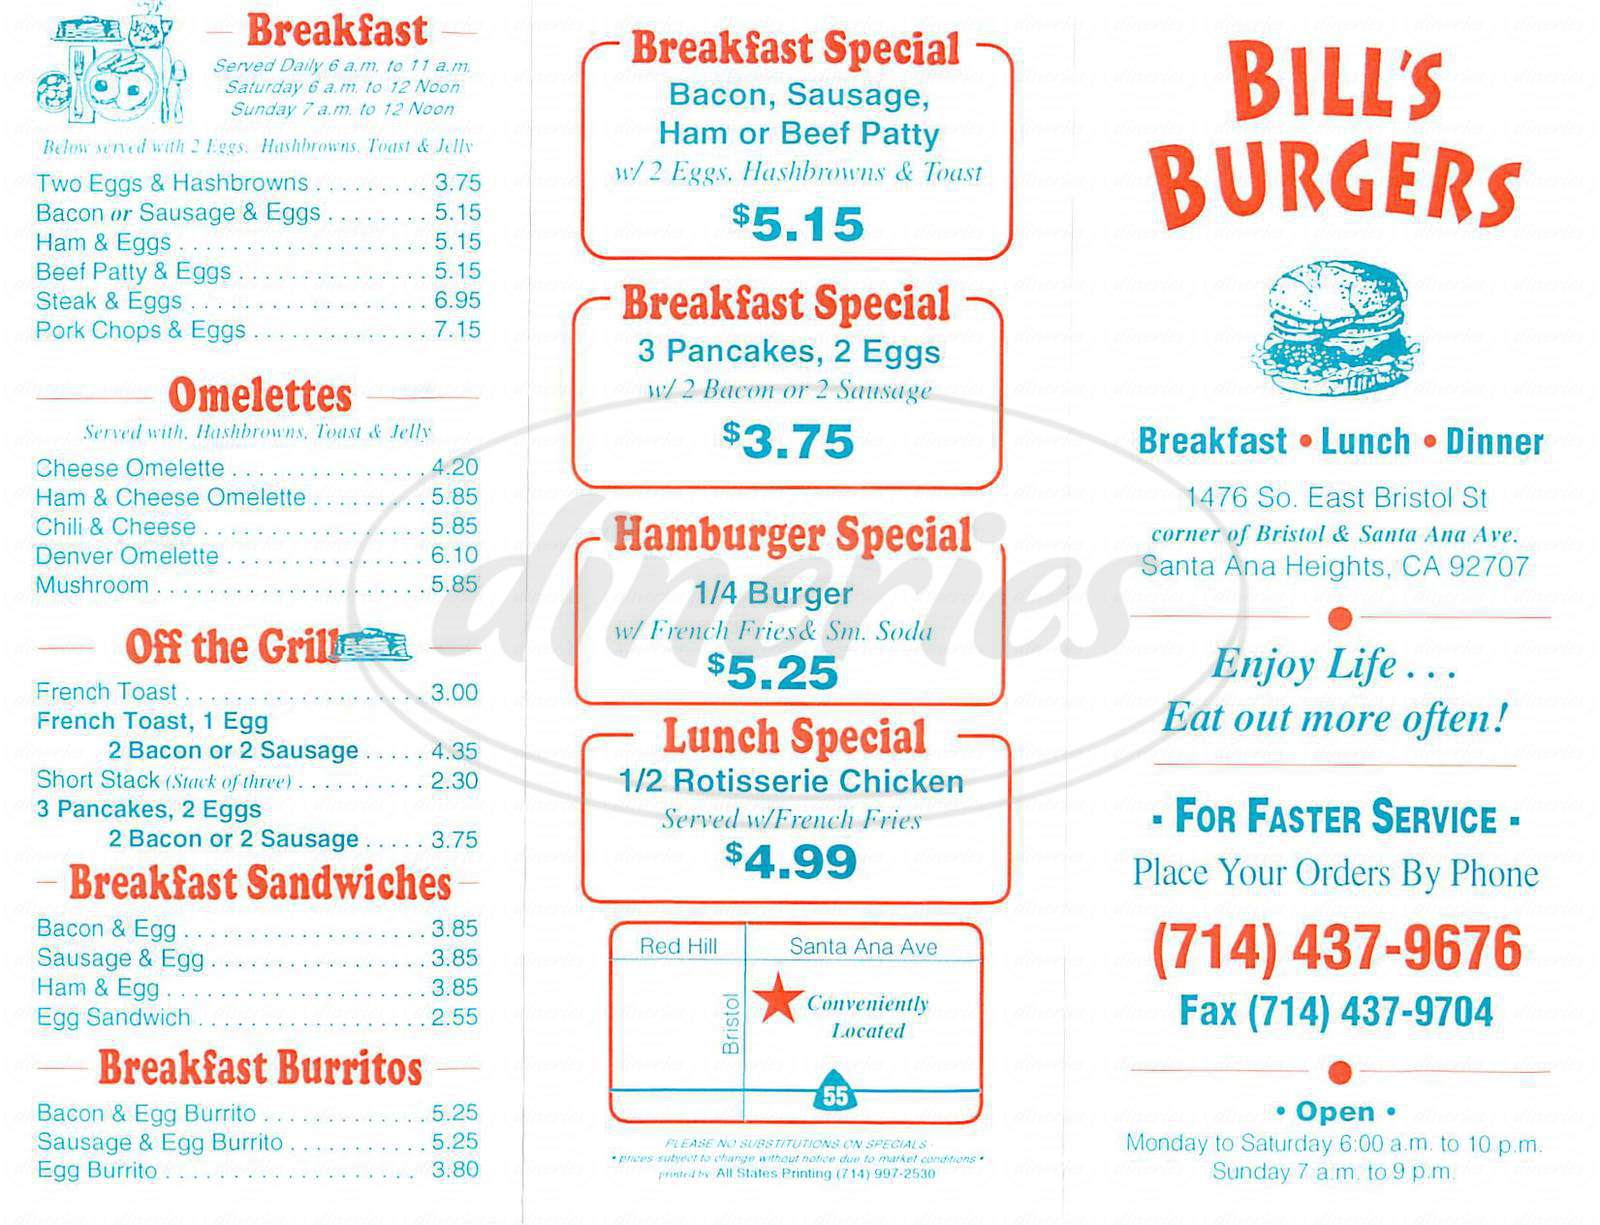 menu for Bill's Burgers